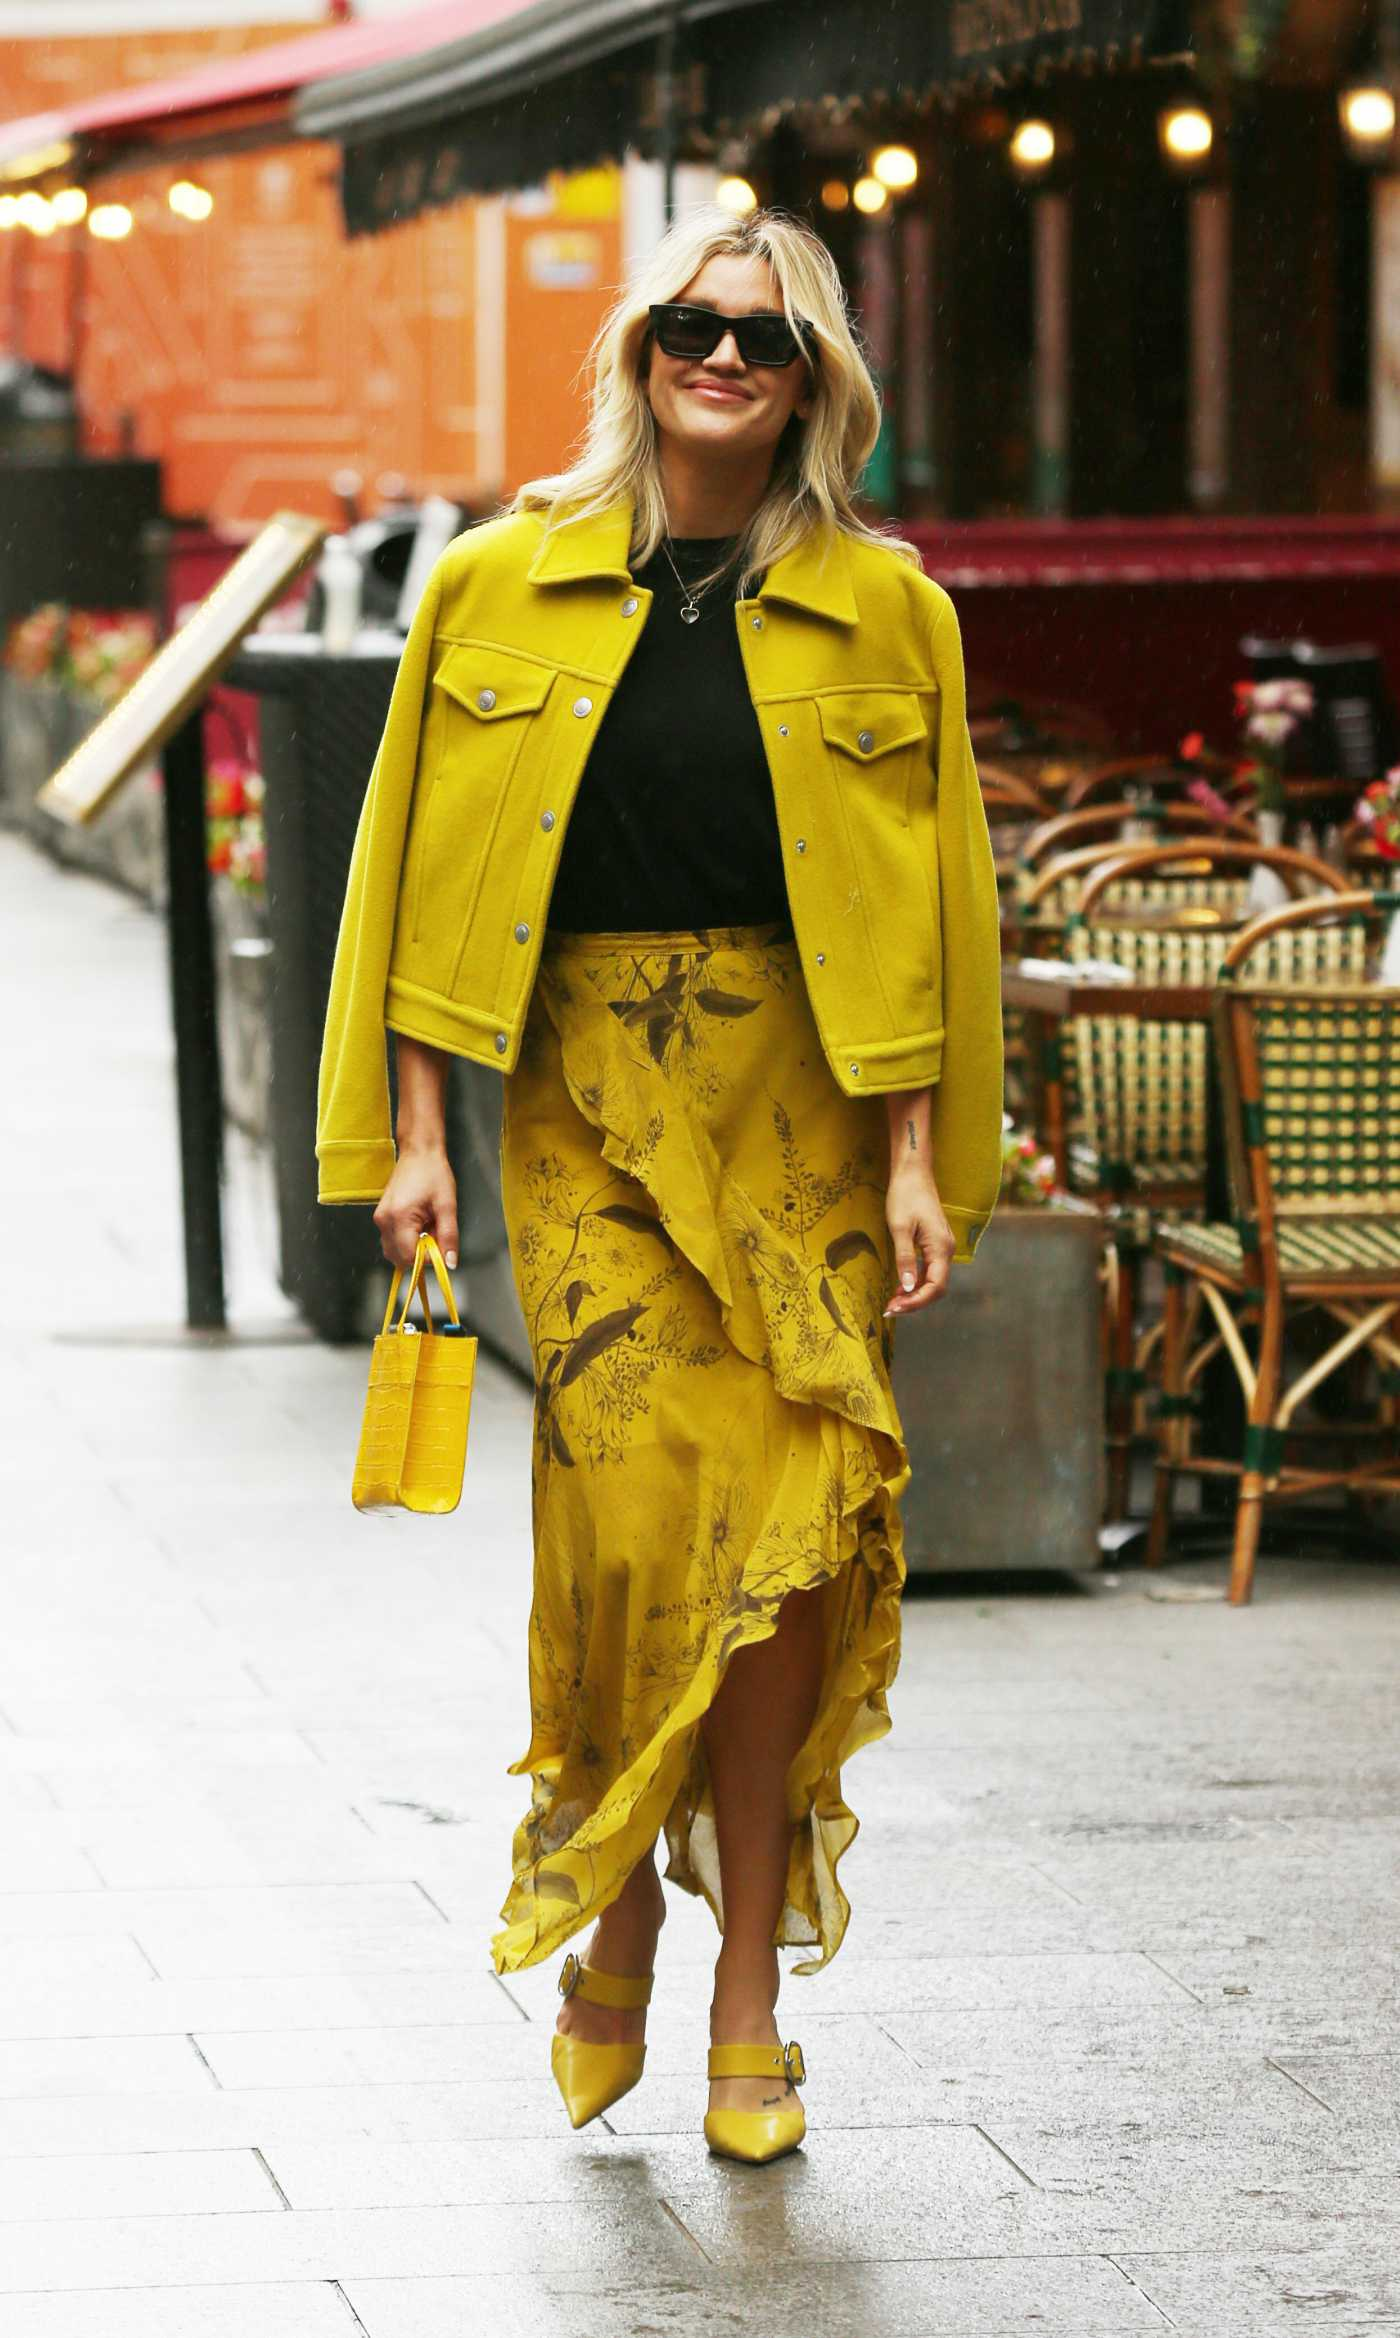 Ashley Roberts in a Yellow Outfit Leaves the Global Radio Studios in London 08/06/2021